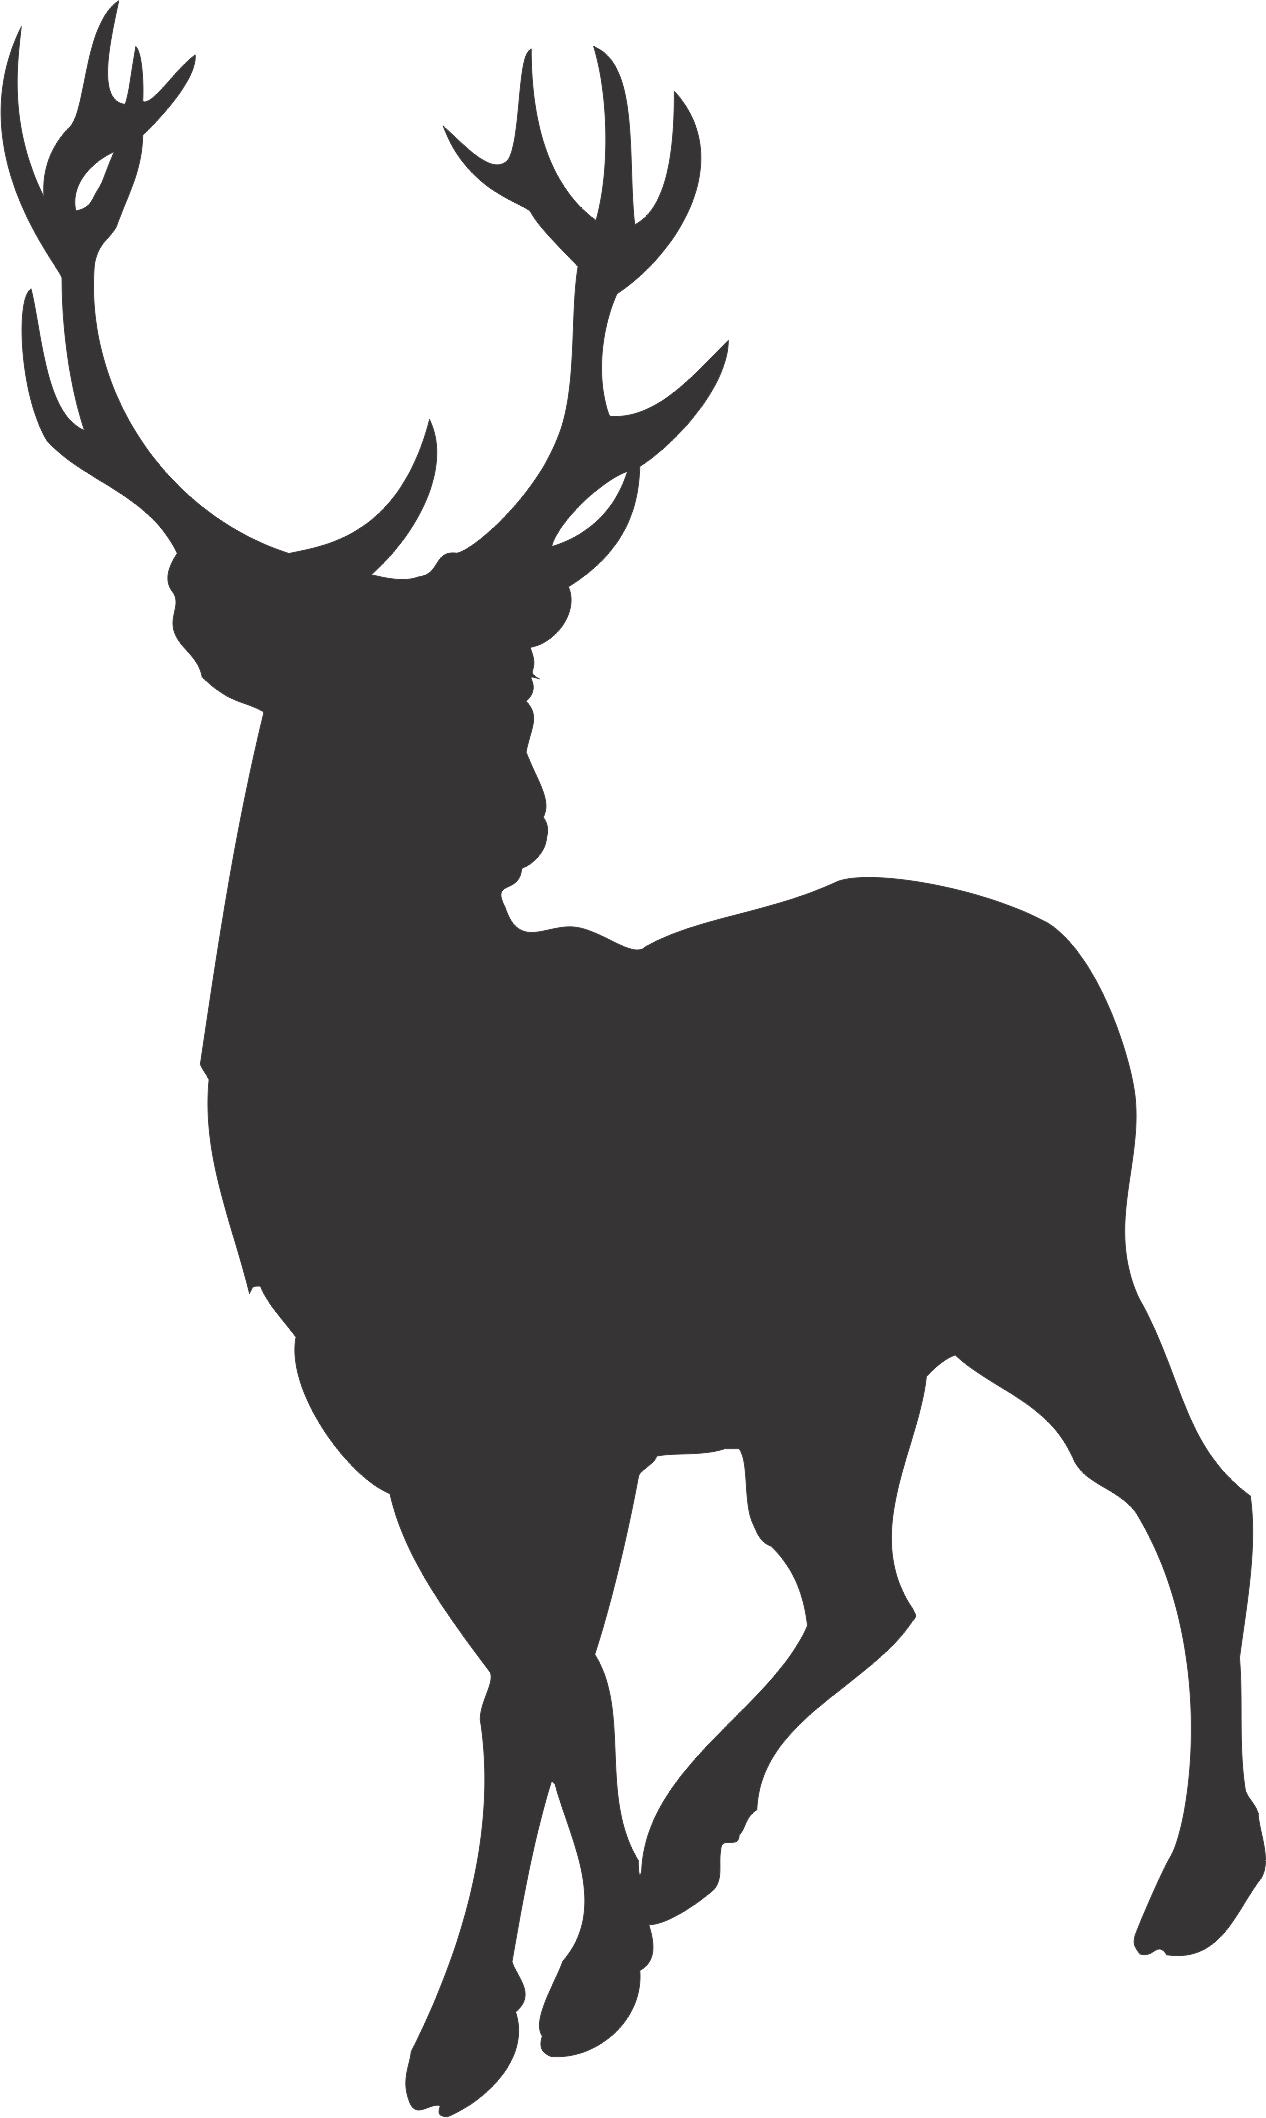 Cartoon Deer Silhouette 3 - ClipArt Best - ClipArt Best